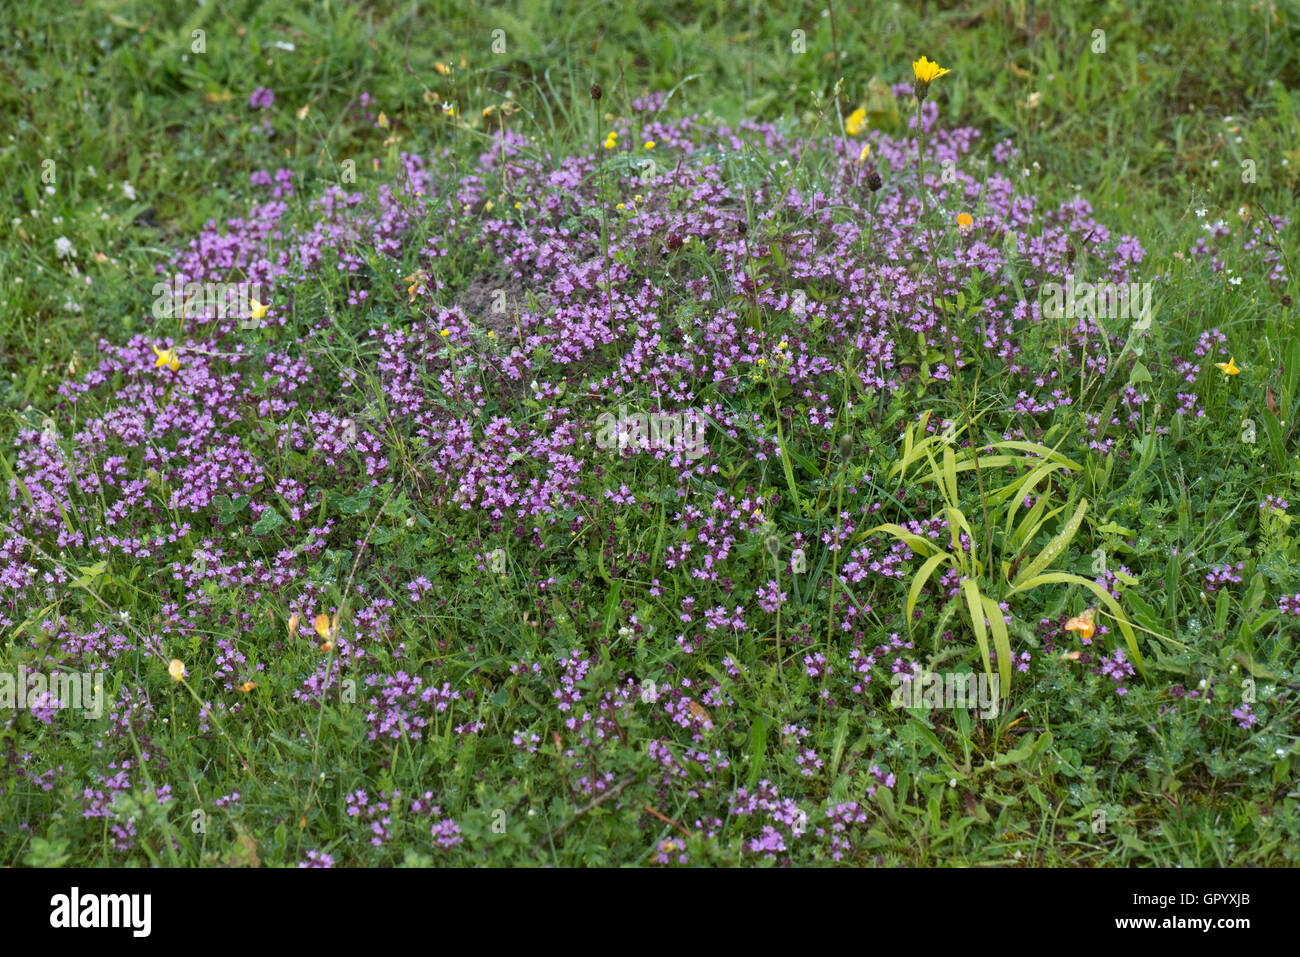 Wild thyme, Thymus serpyllum, flowering on the floor of a disused chalk quarry on a rainy day, June - Stock Image